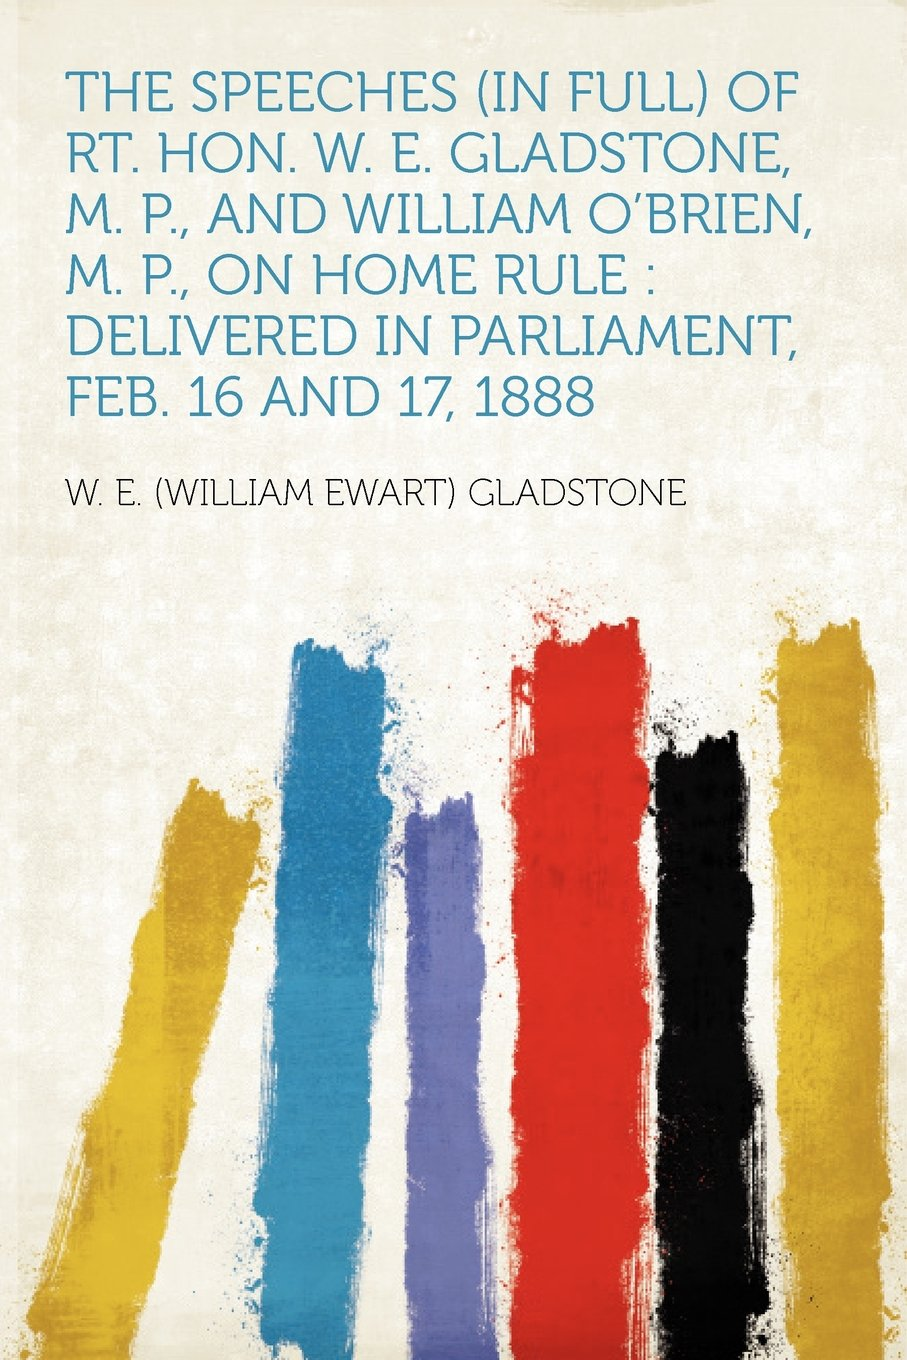 The Speeches (in Full) of Rt. Hon. W. E. Gladstone, M. P., and William O'Brien, M. P., on Home Rule: Delivered in Parliament, Feb. 16 and 17, 1888 ebook